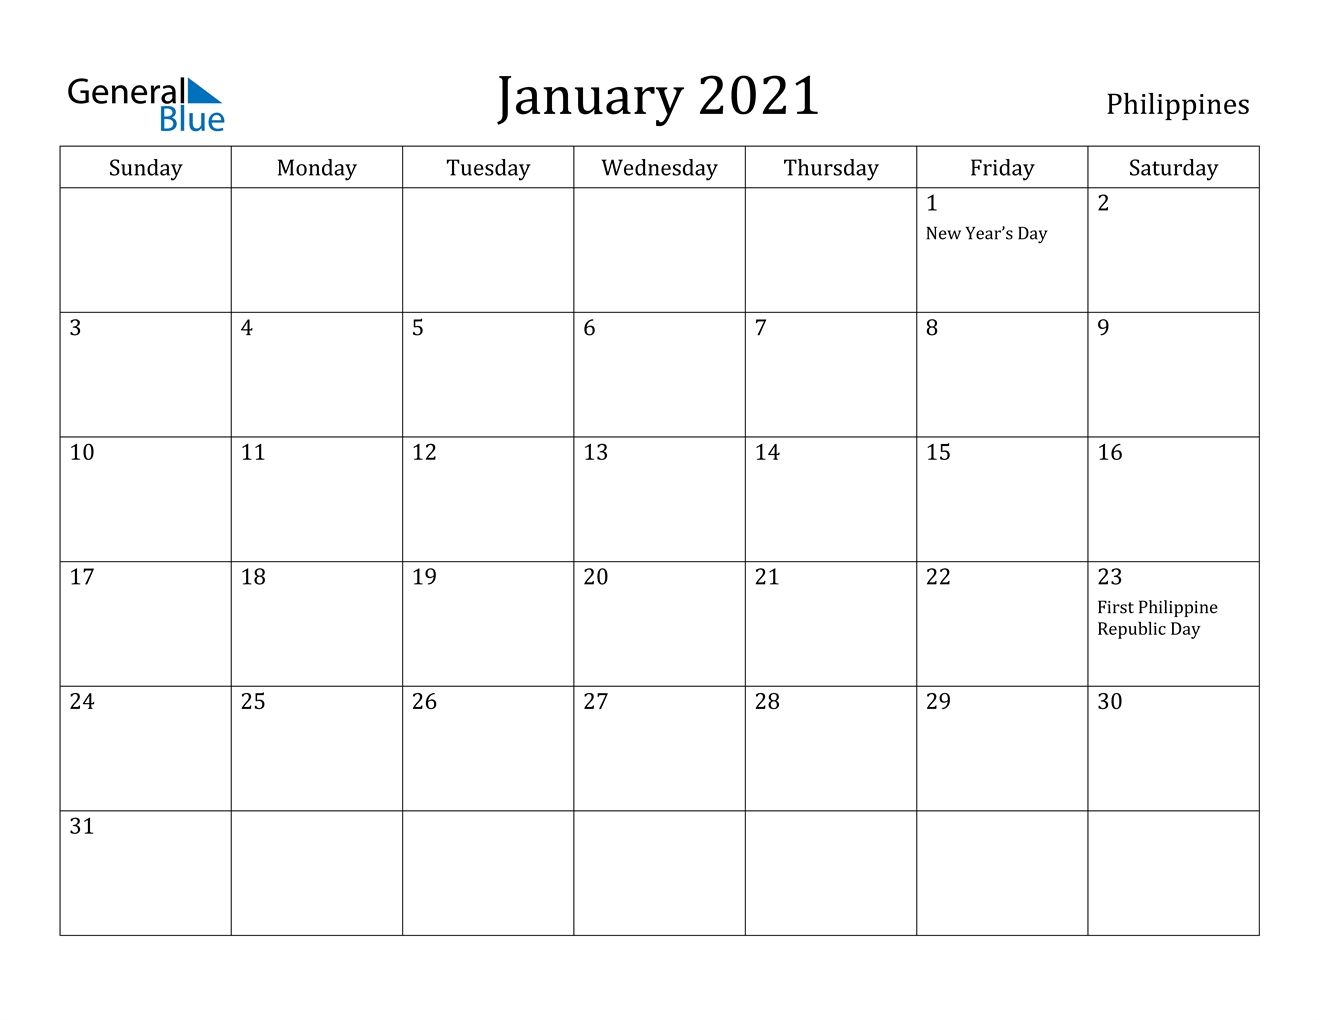 January 2021 Calendar - Philippines-Print Philippine 2021 Calendars With Holiday